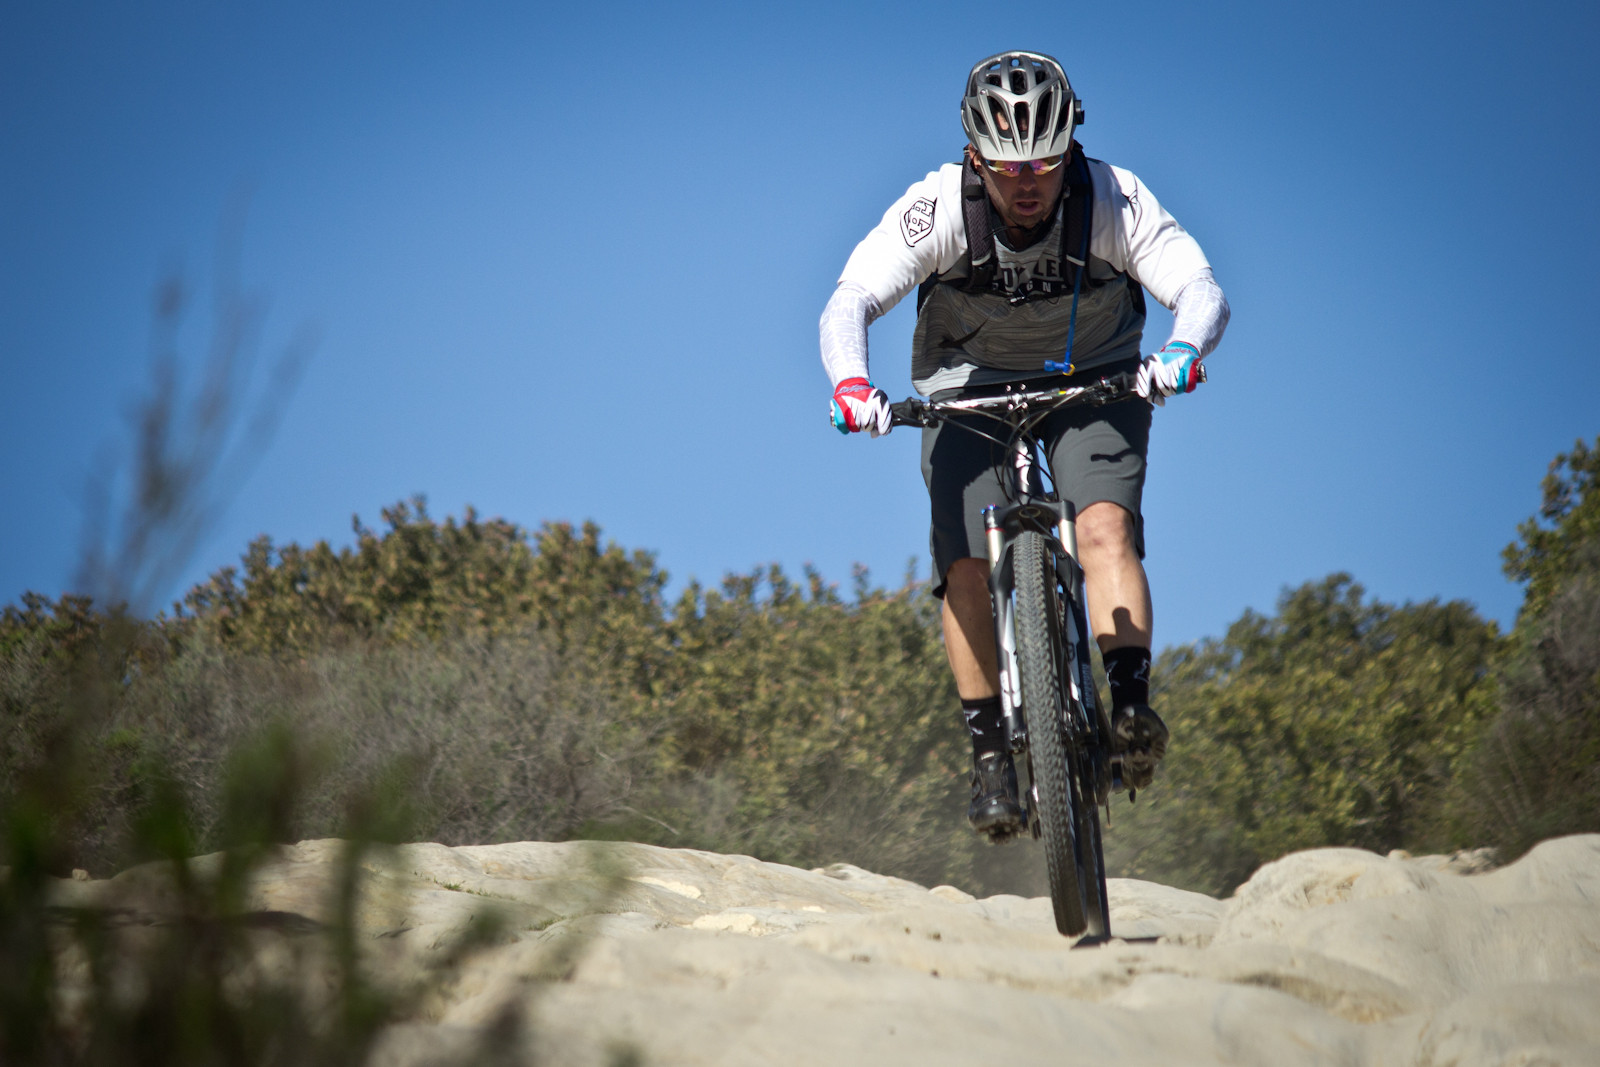 Jeremy McGrath - Specialized A1 Ride Daze - In Memory of Burry Stander - Mountain Biking Pictures - Vital MTB